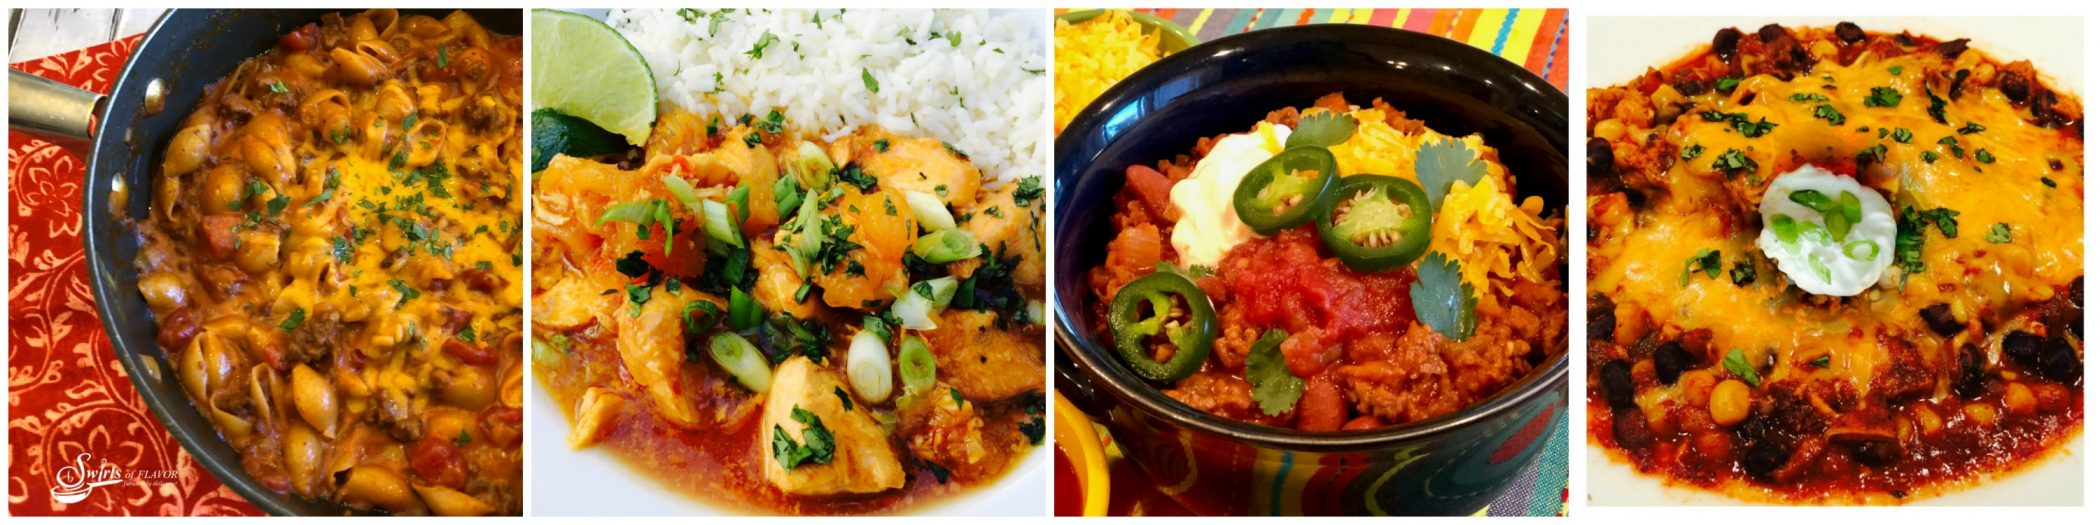 Left to Right: One Pot Chili Mac and Cheese; Pineapple Chicken Chili; Best Ever Quick Chili; Slow Cooker Chili